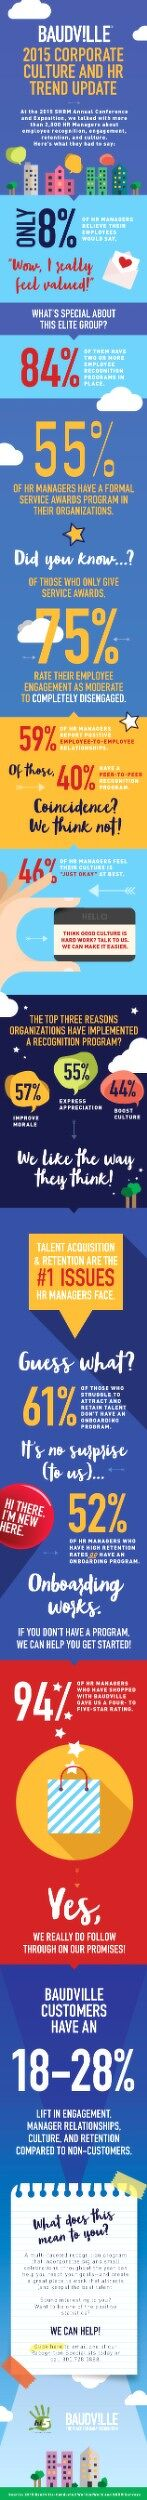 2015 Corporate Culture & HR Trends